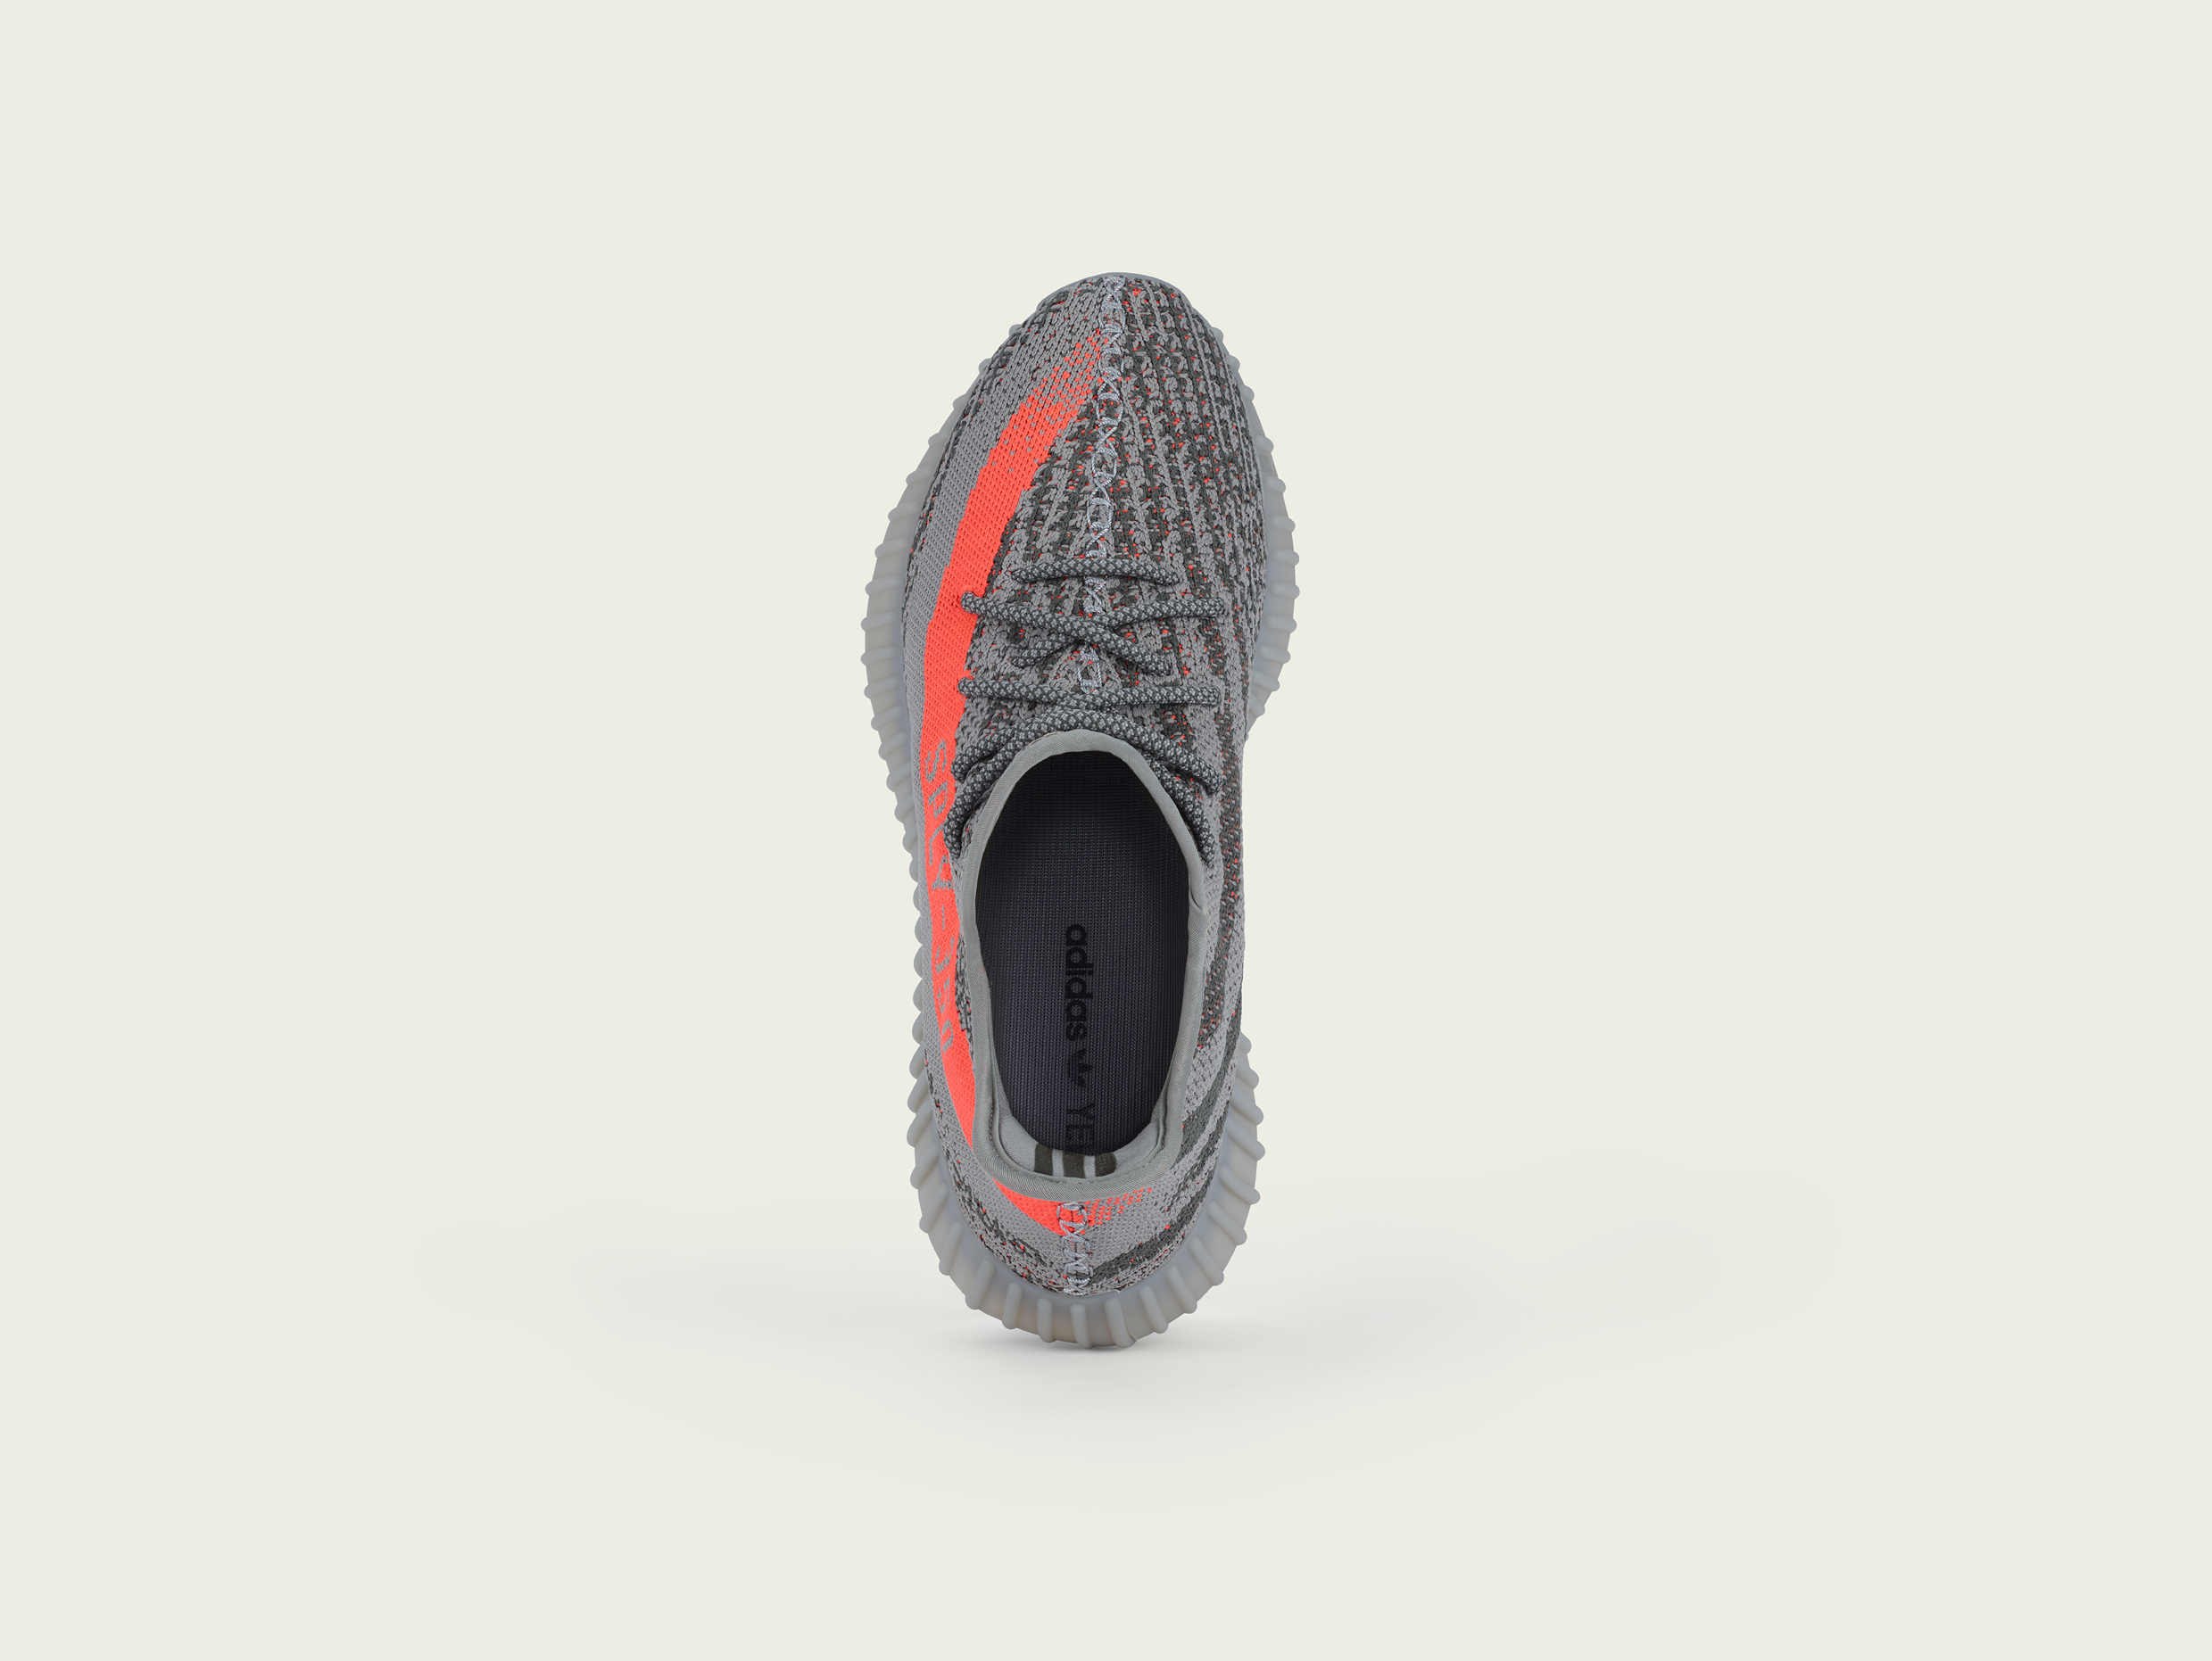 adidas yeezy boost 350 v2 nuove